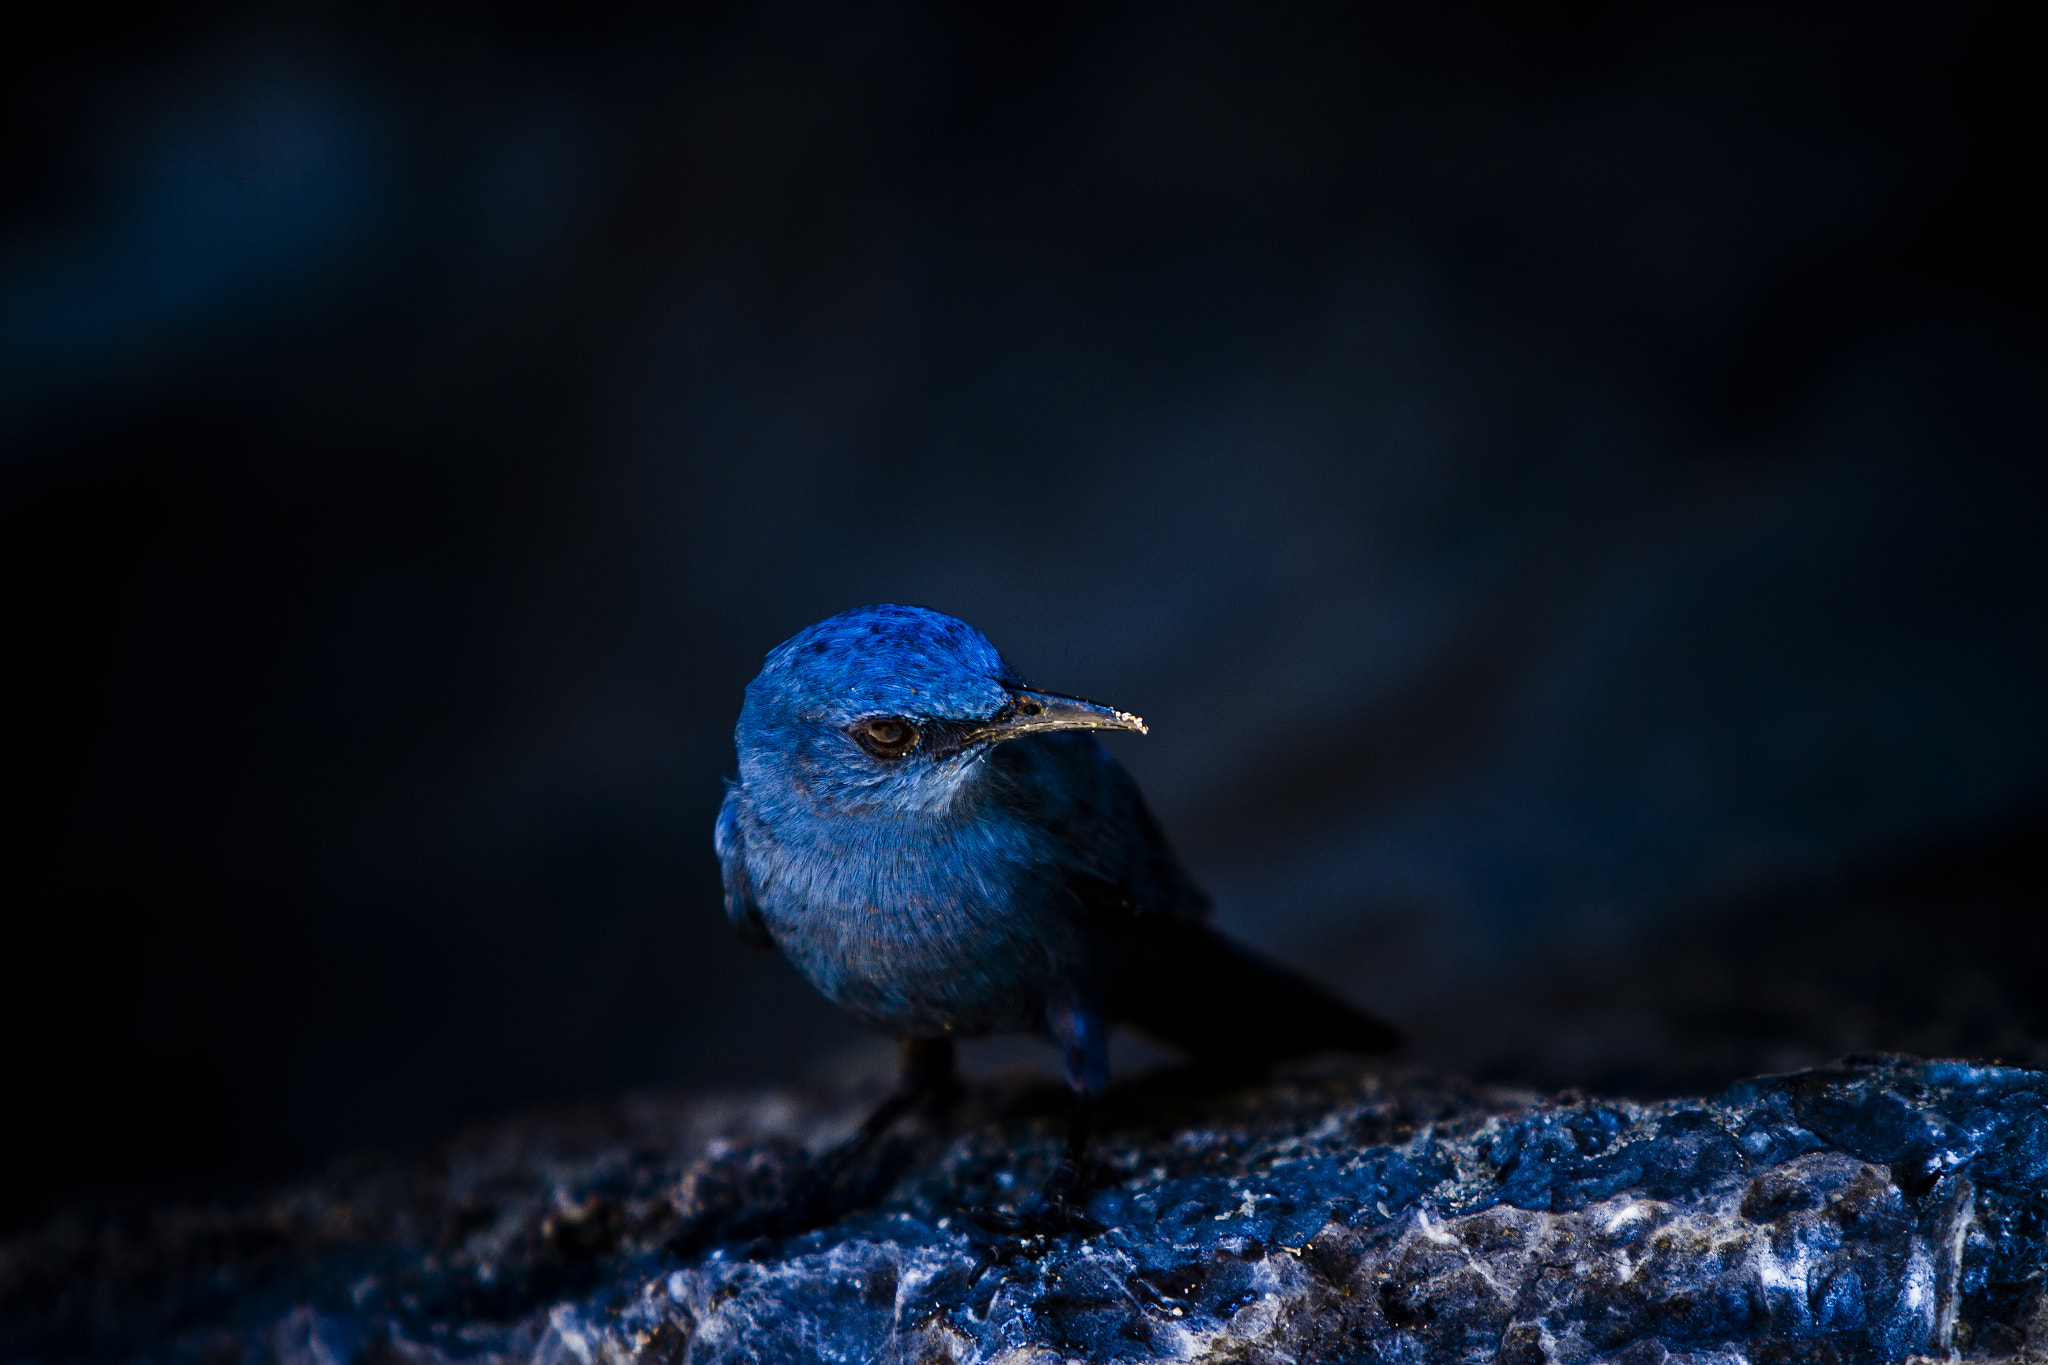 Photograph Blue Kingfisher by Zhang Rui  张睿 on 500px